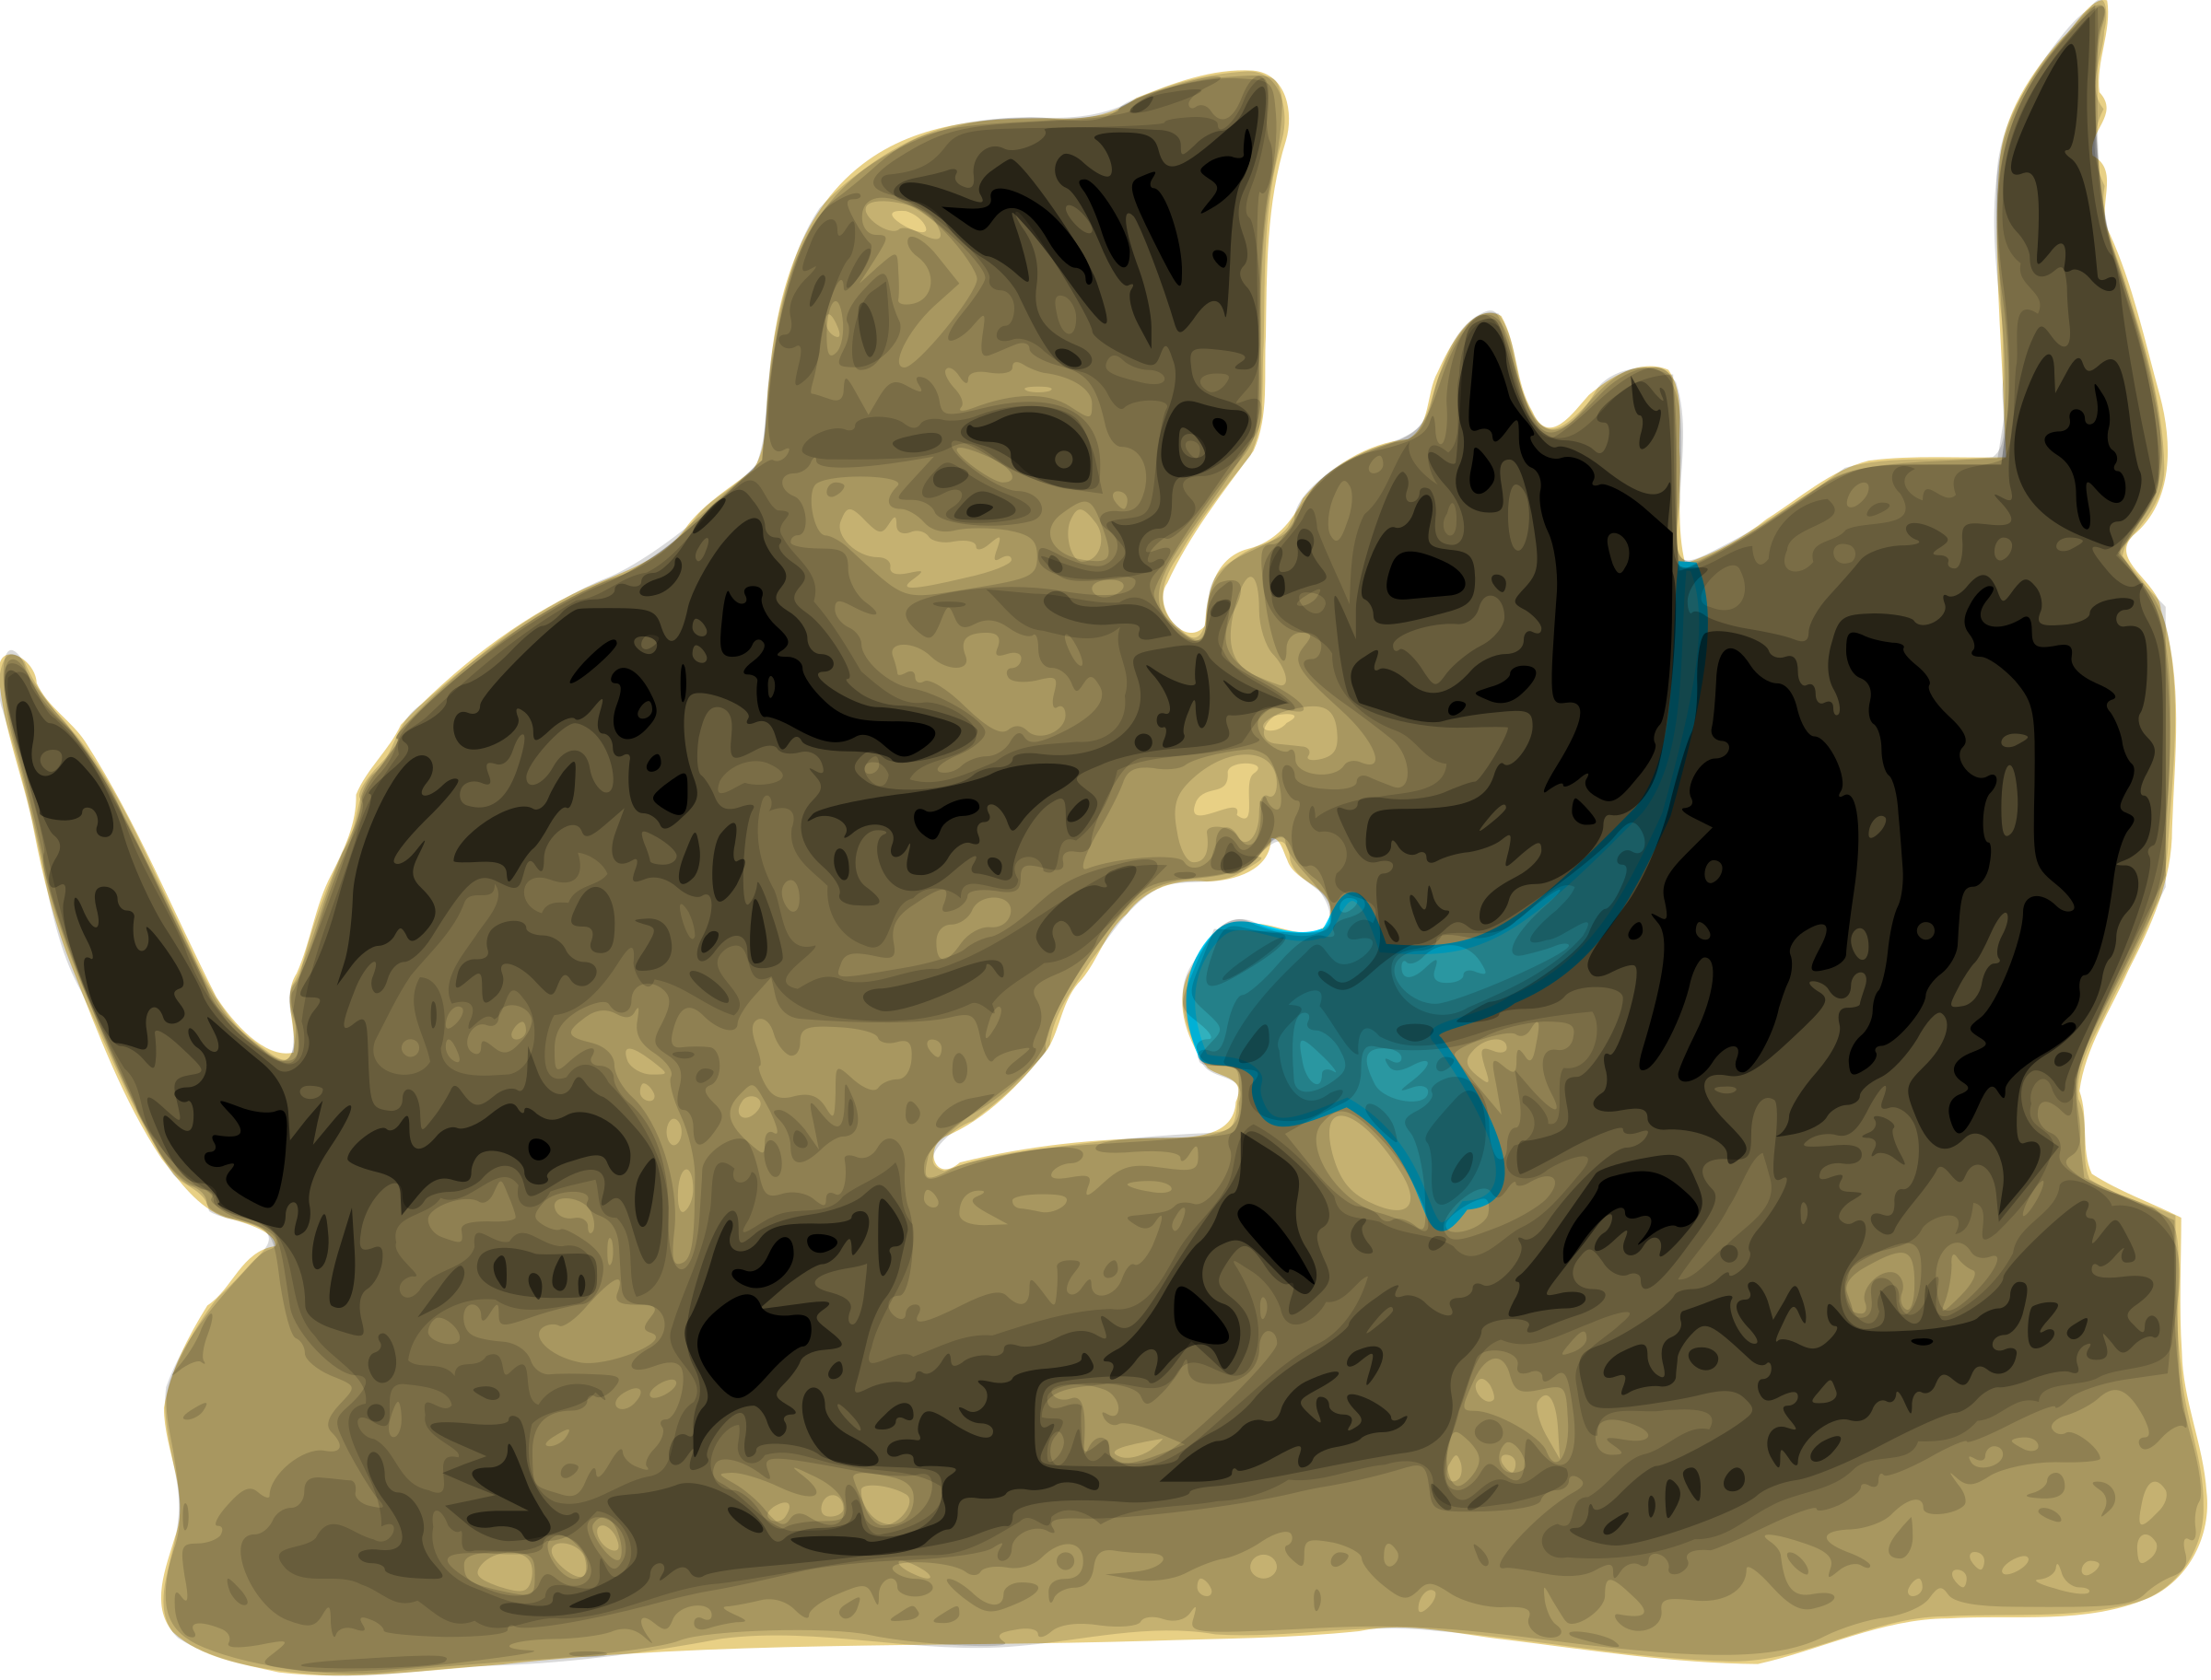 Kittens, One with Blue Ribbon by AlanO